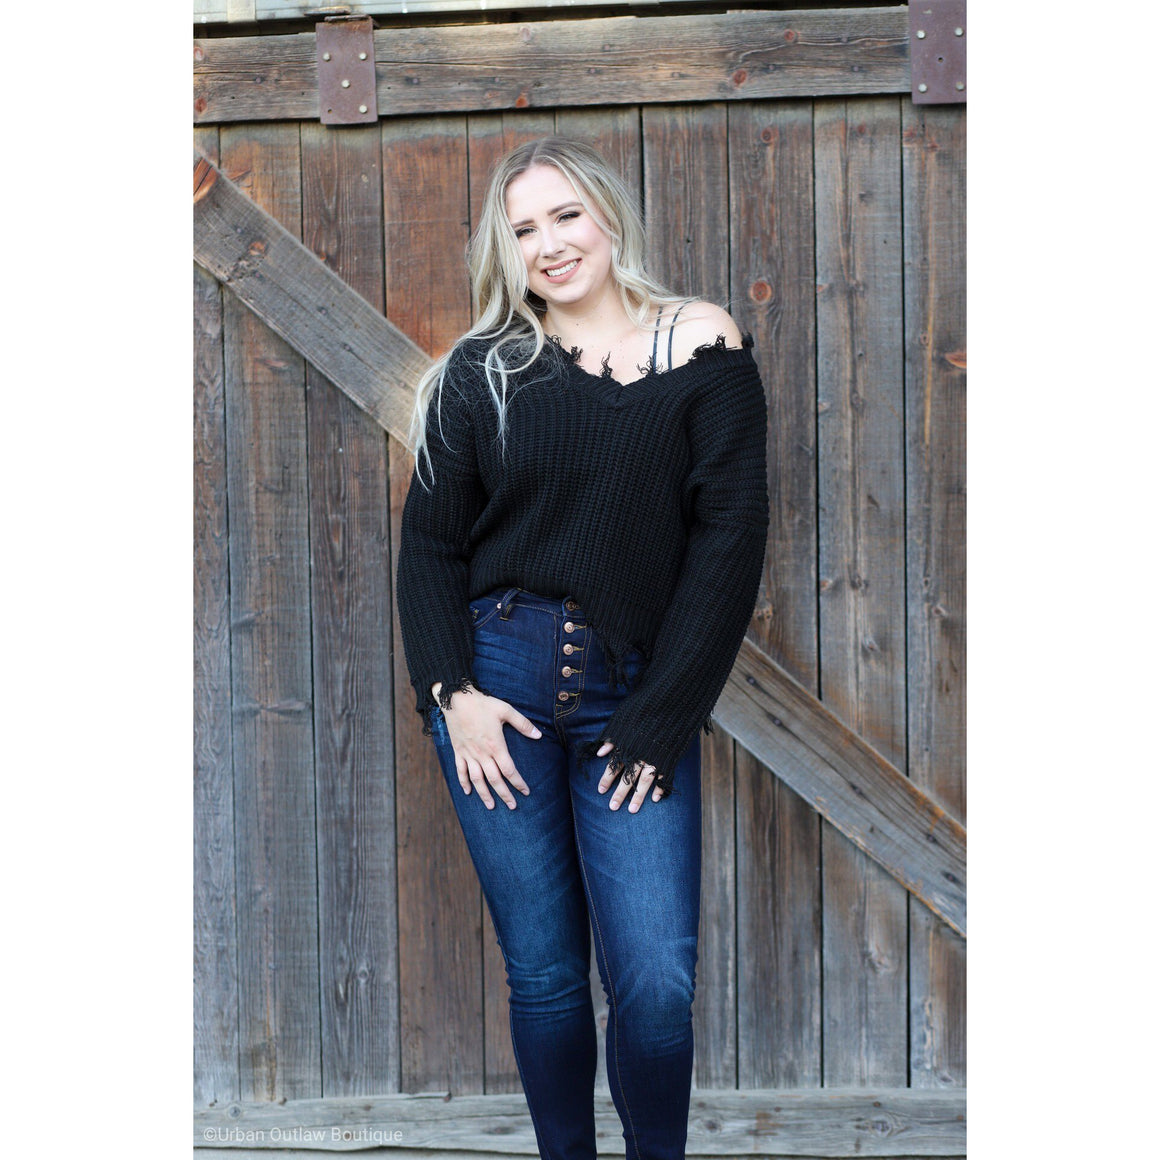 Sweater - My Distressed Heart Sweater (Black)